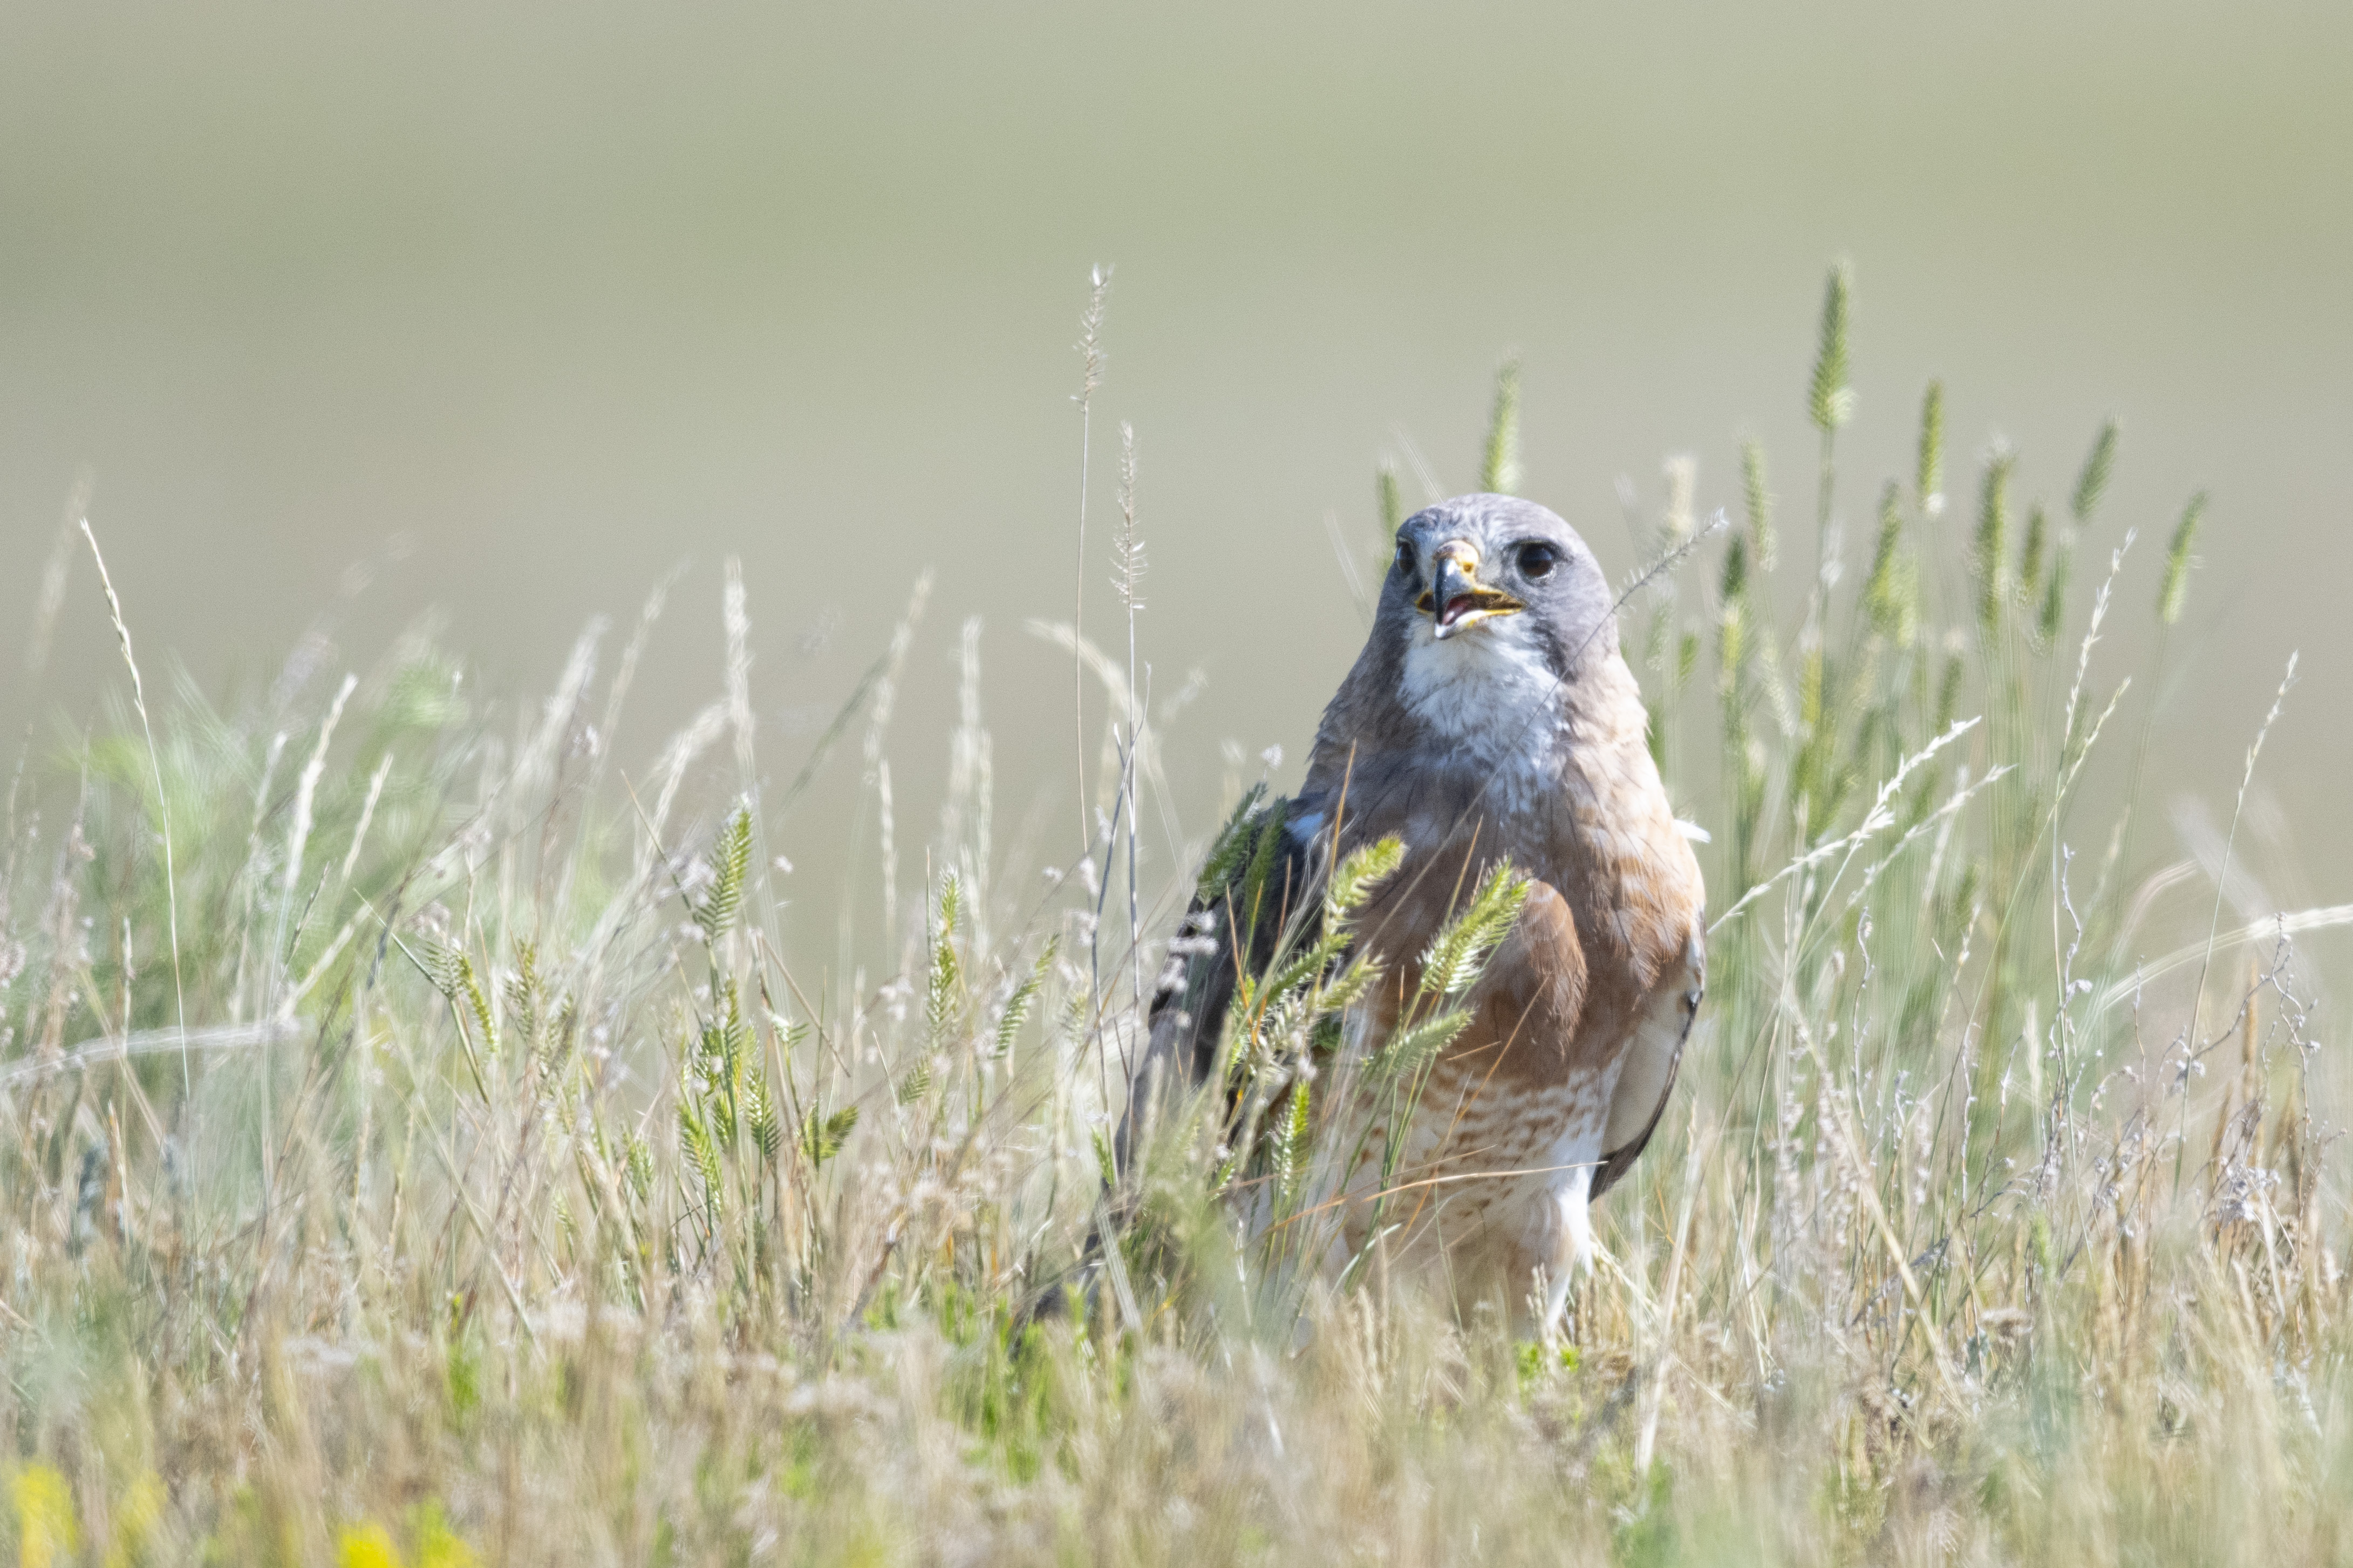 A hawk sits in the grass